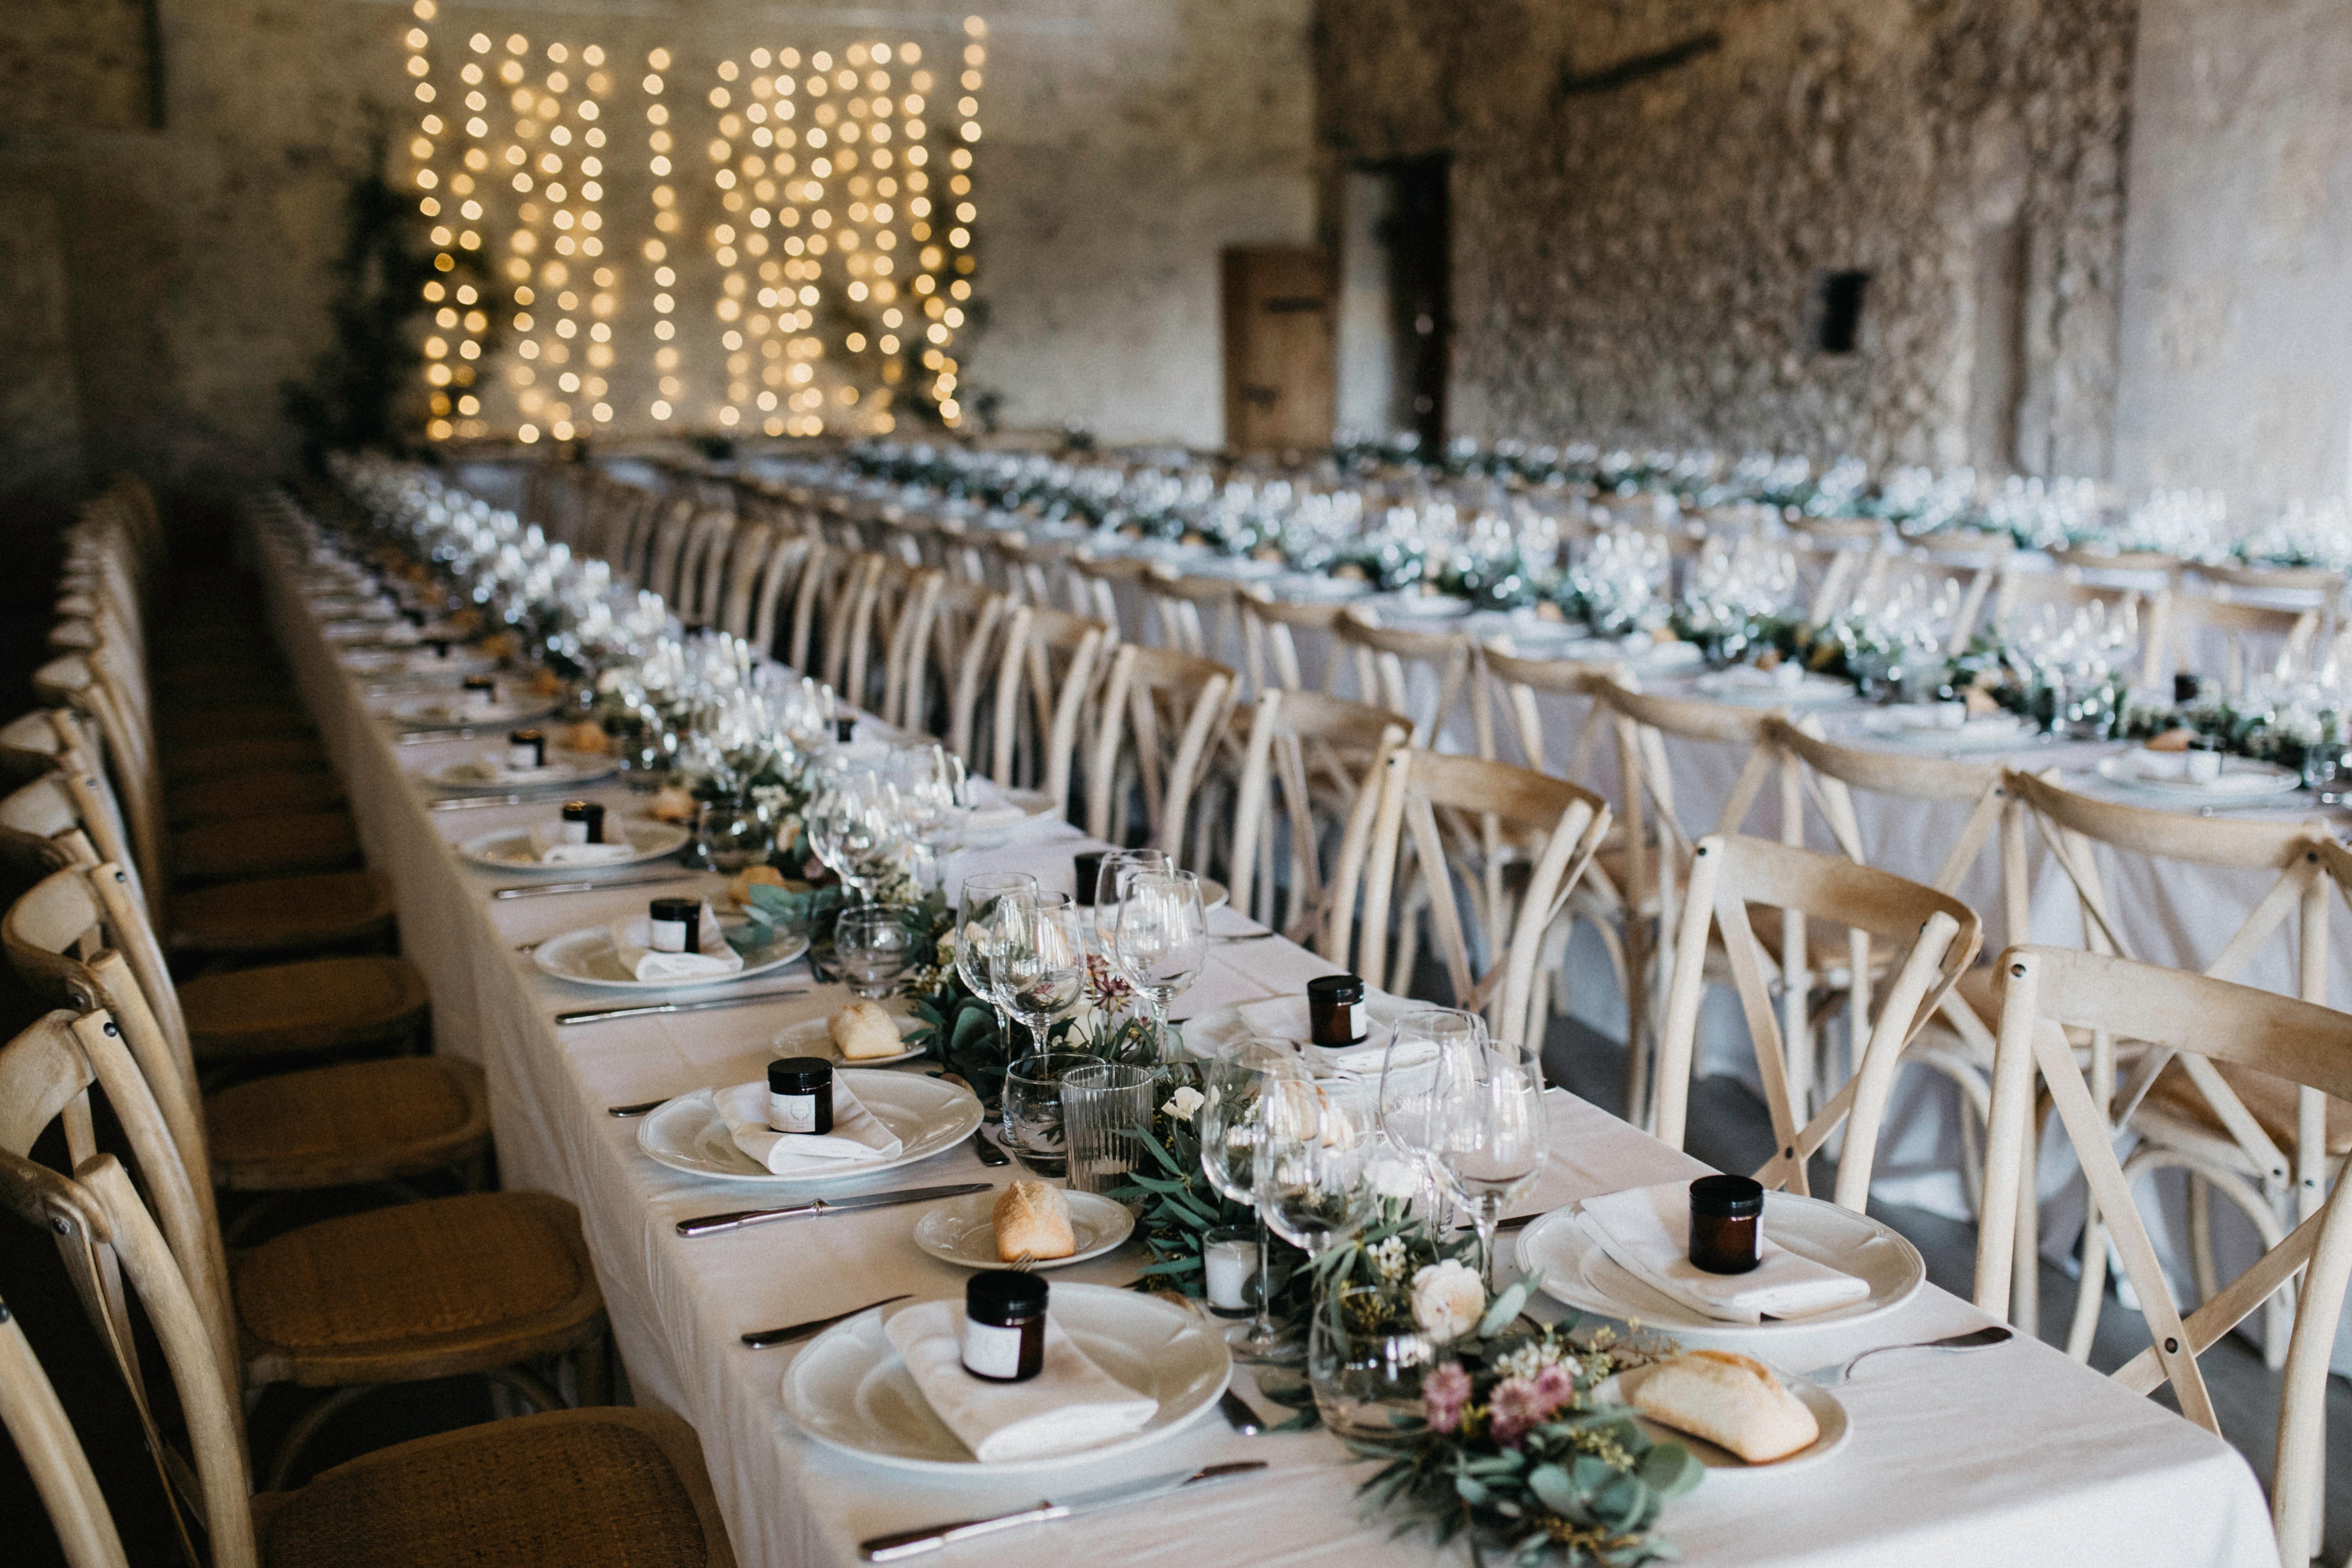 Should you add extra hours when booking your venue?